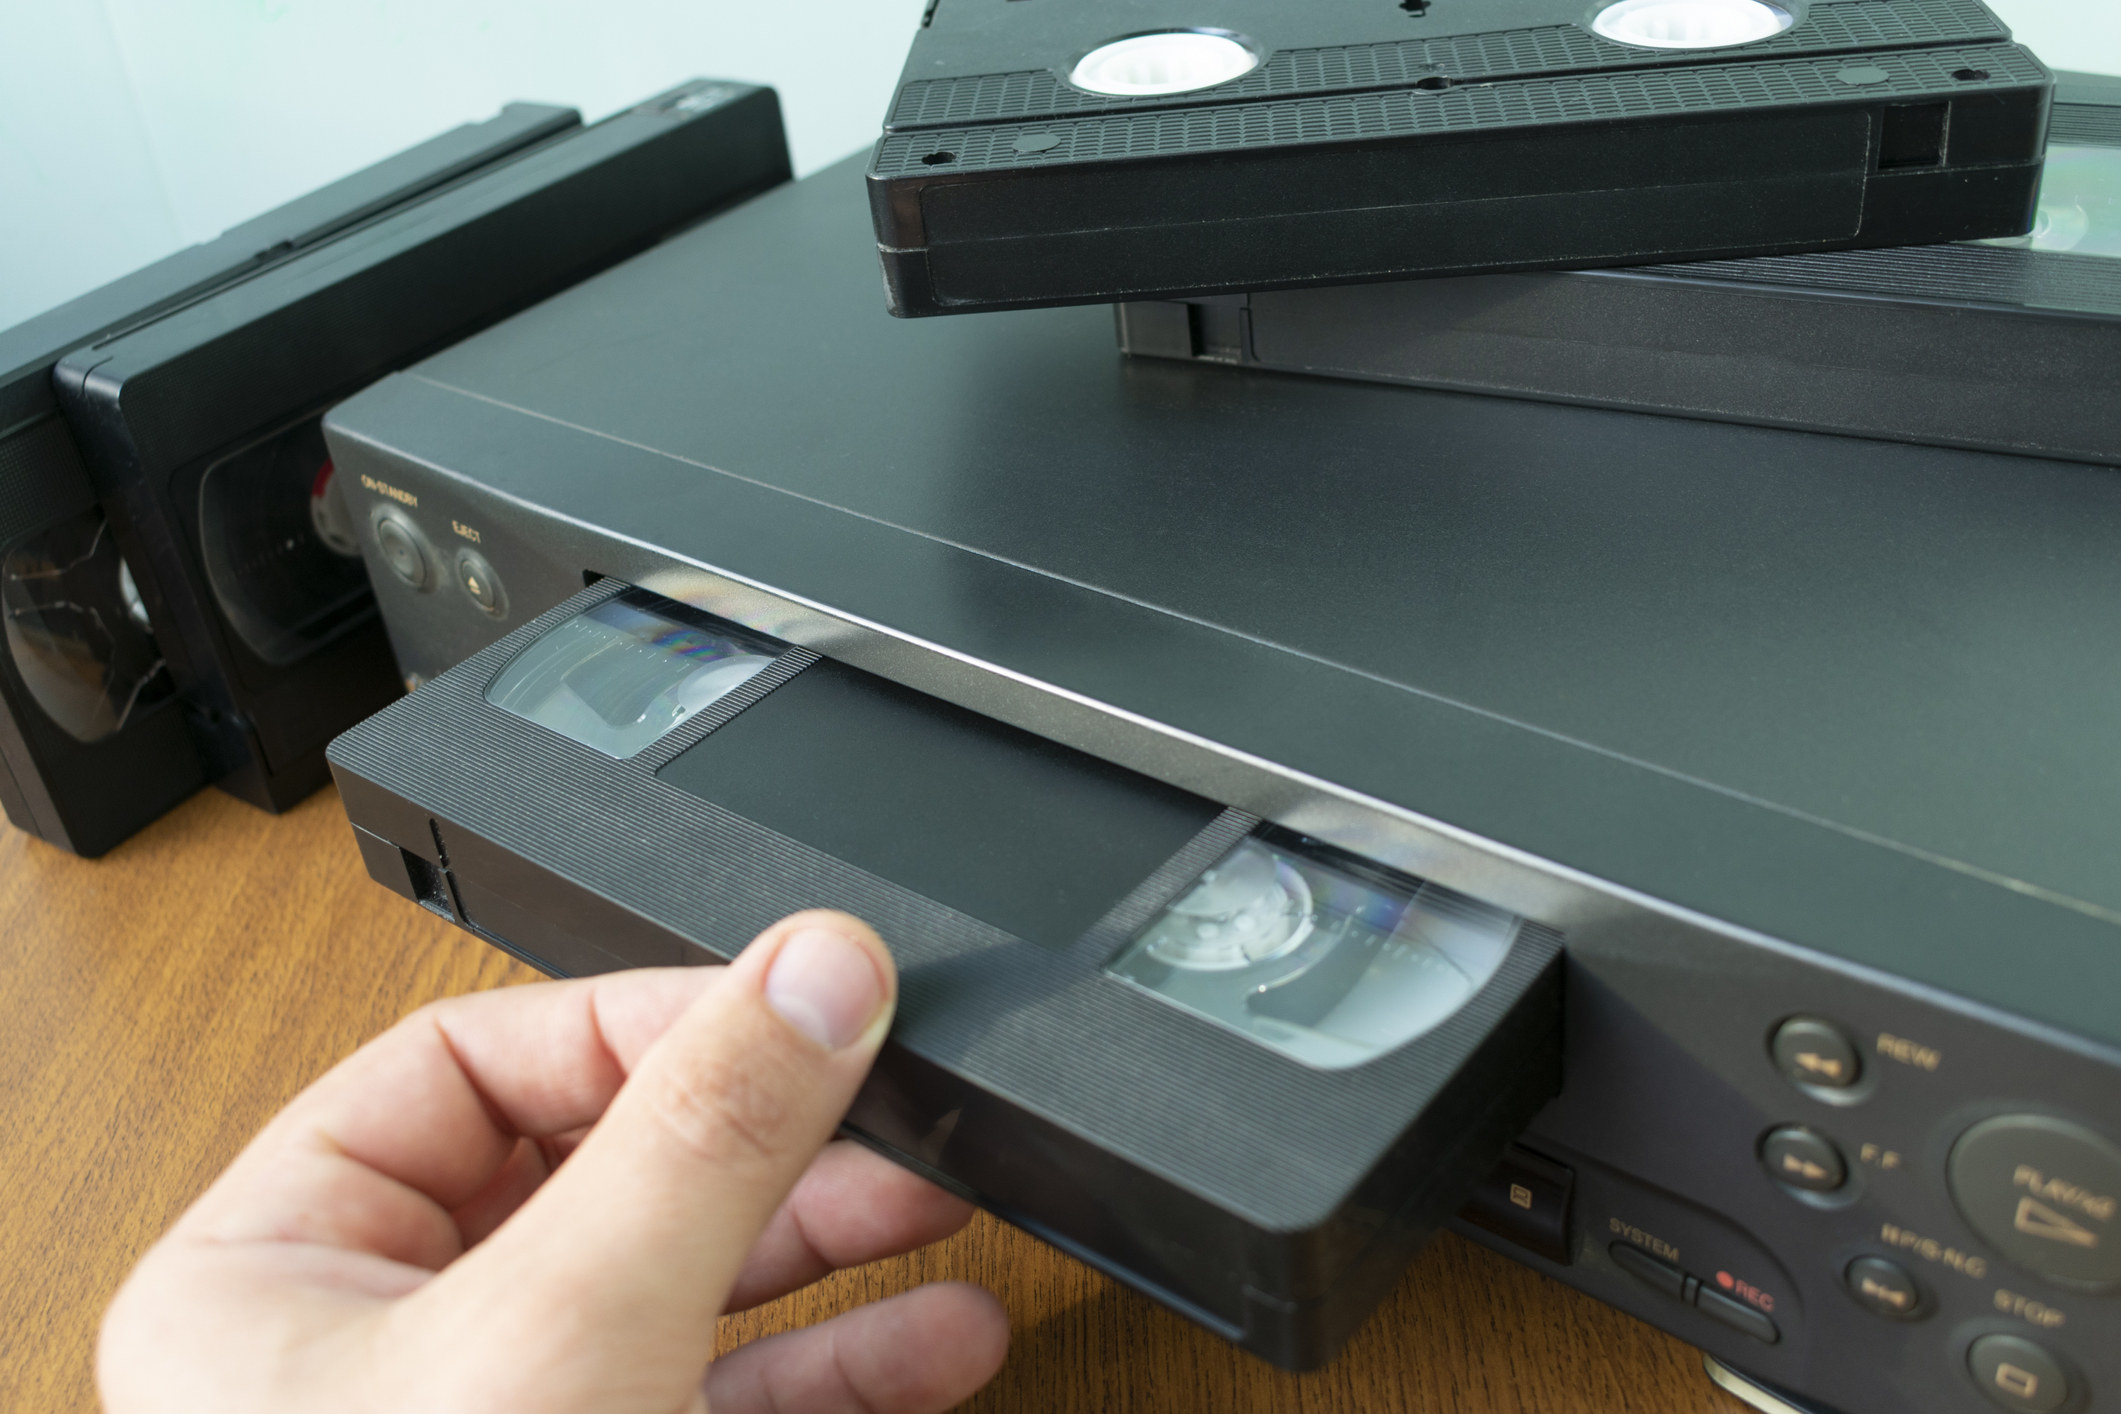 A VHS videocassette being put into a video recorder to watch